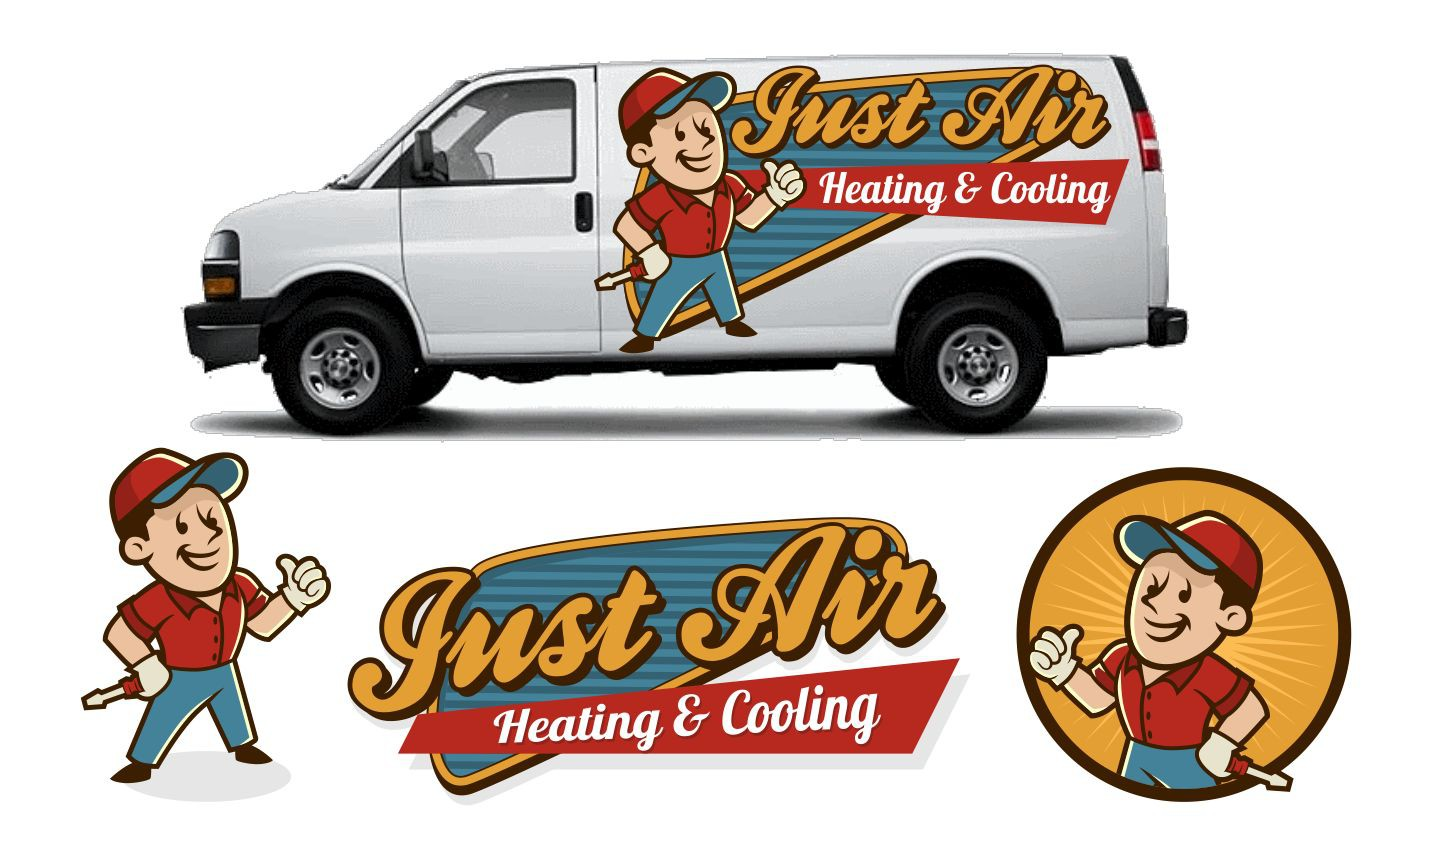 Help Just Air Heating & Cooling with a new logo